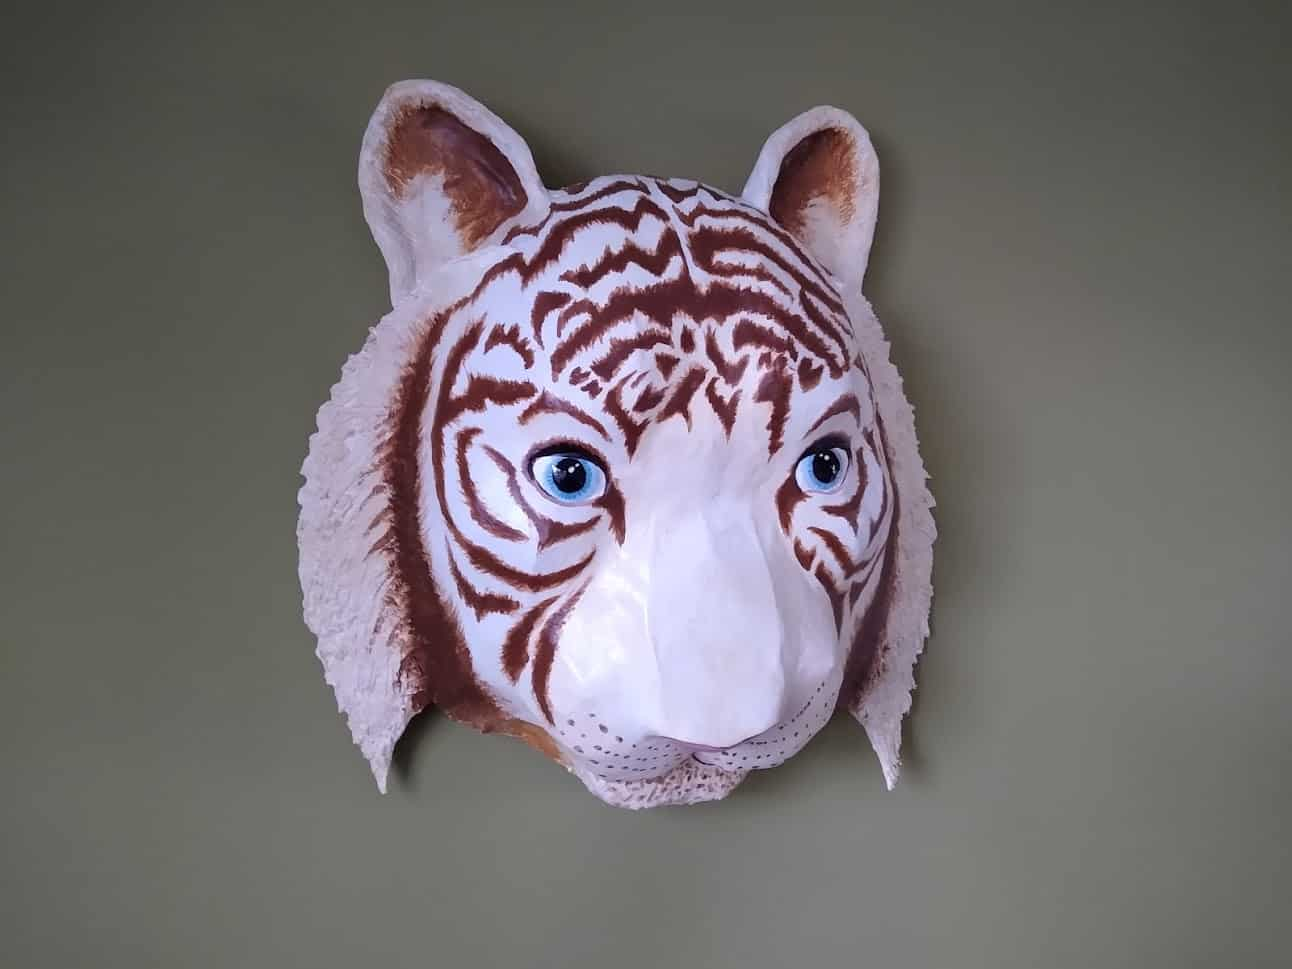 Paper mache tiger wall mask